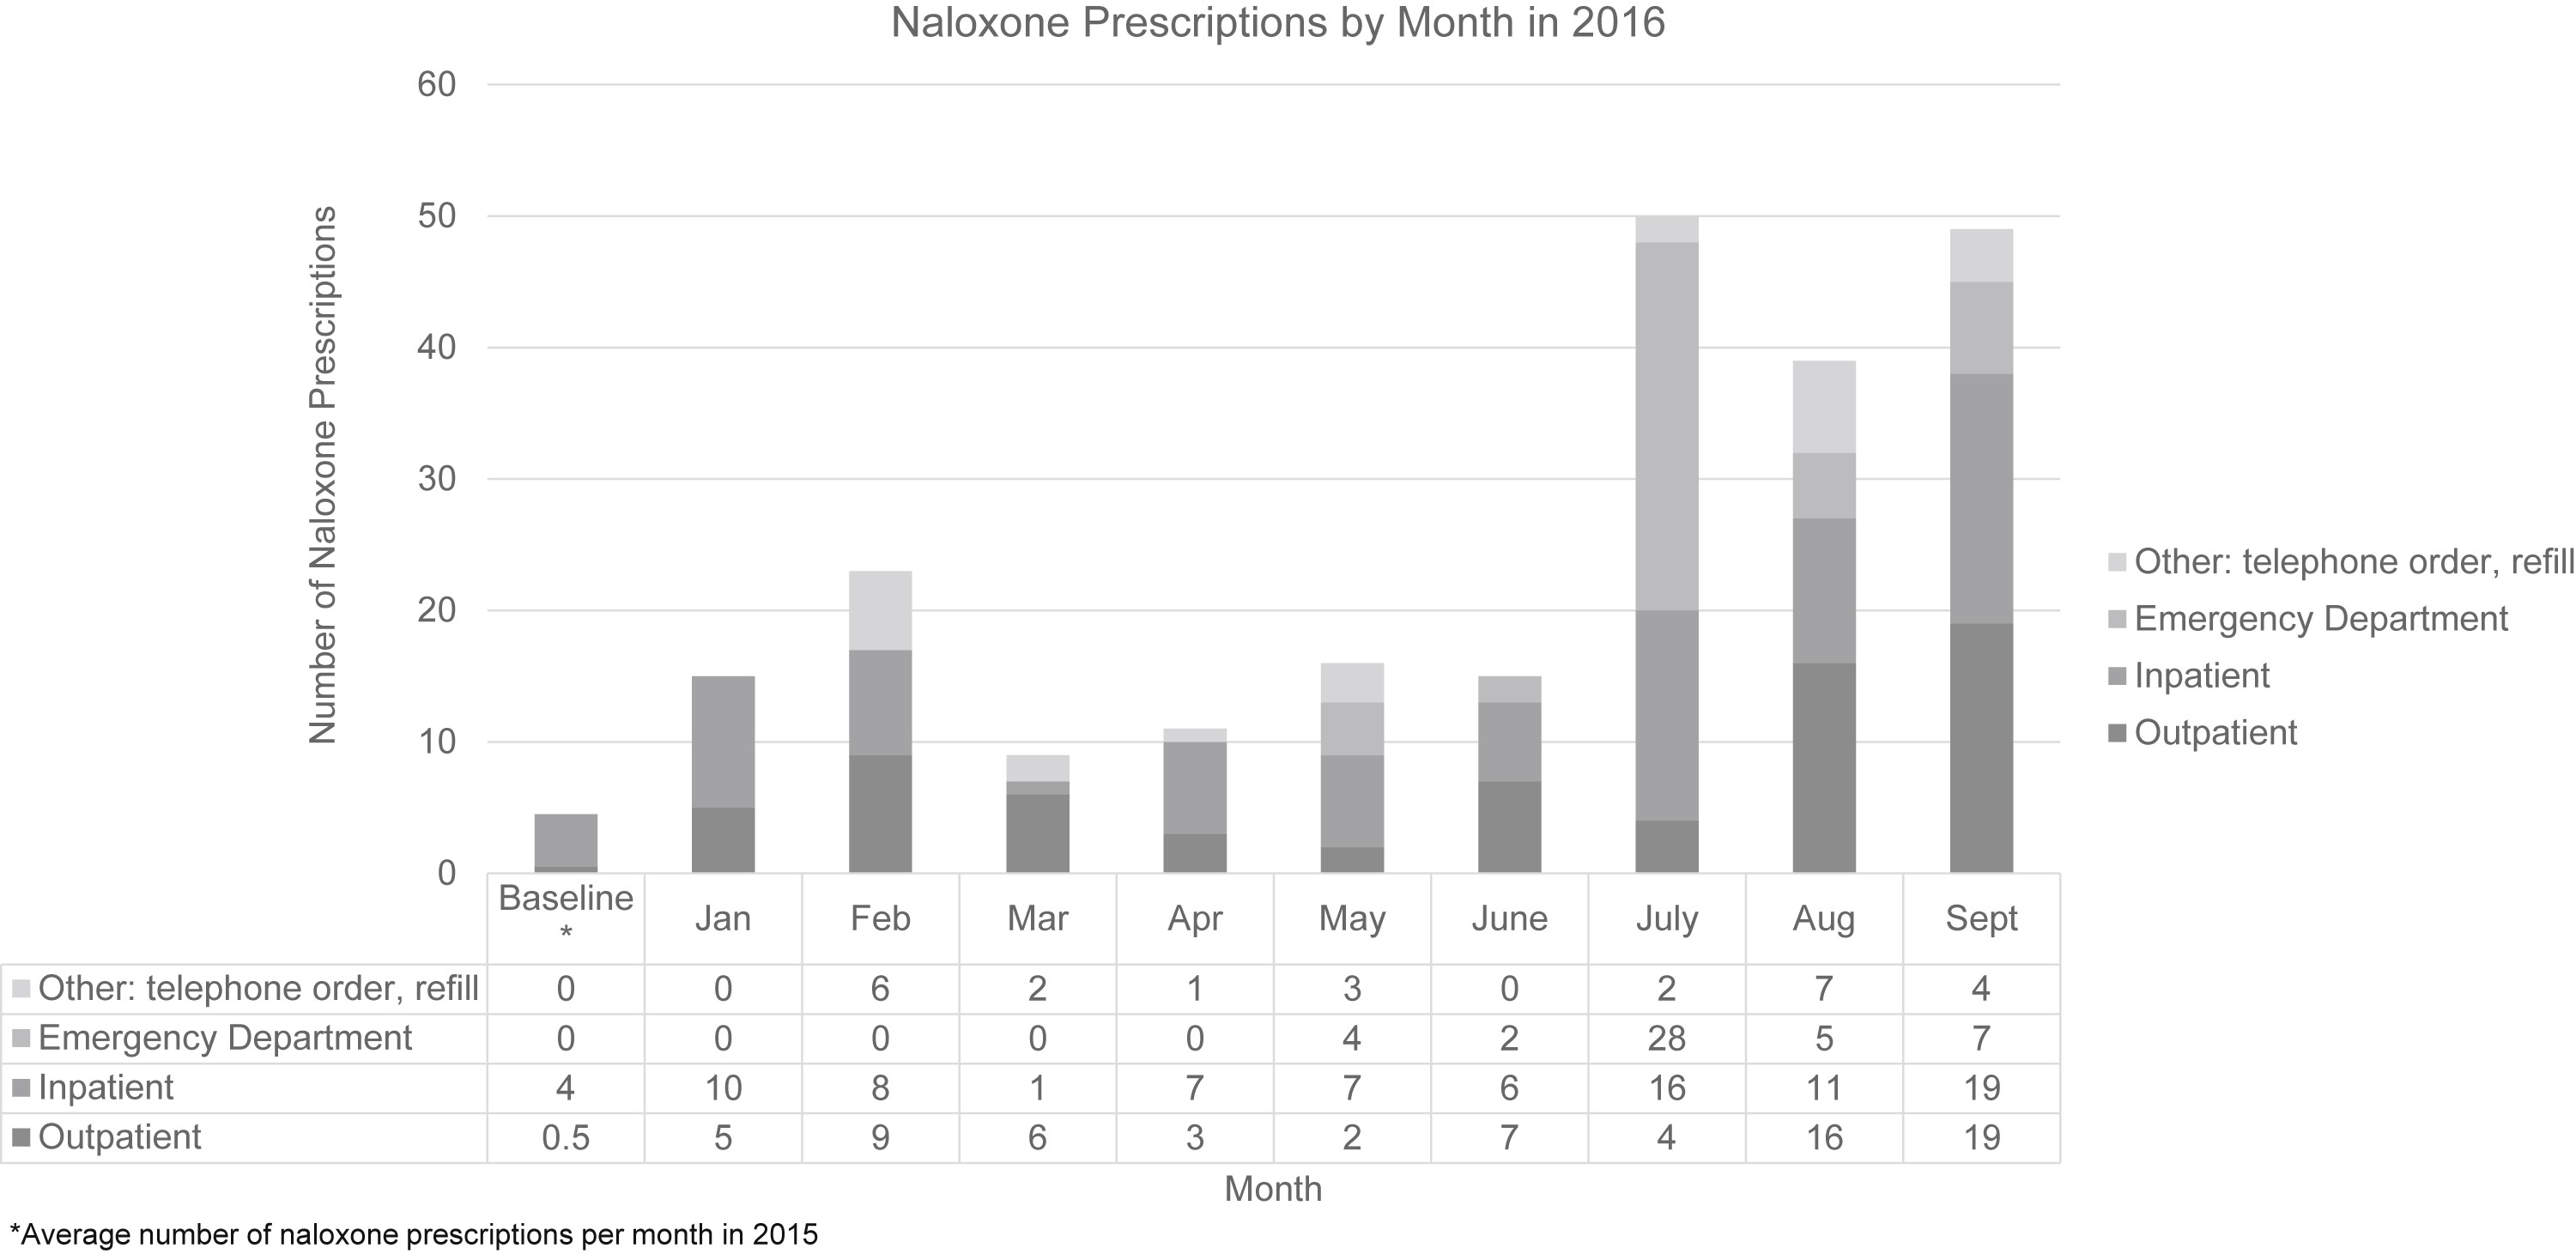 Implementing an overdose education and naloxone